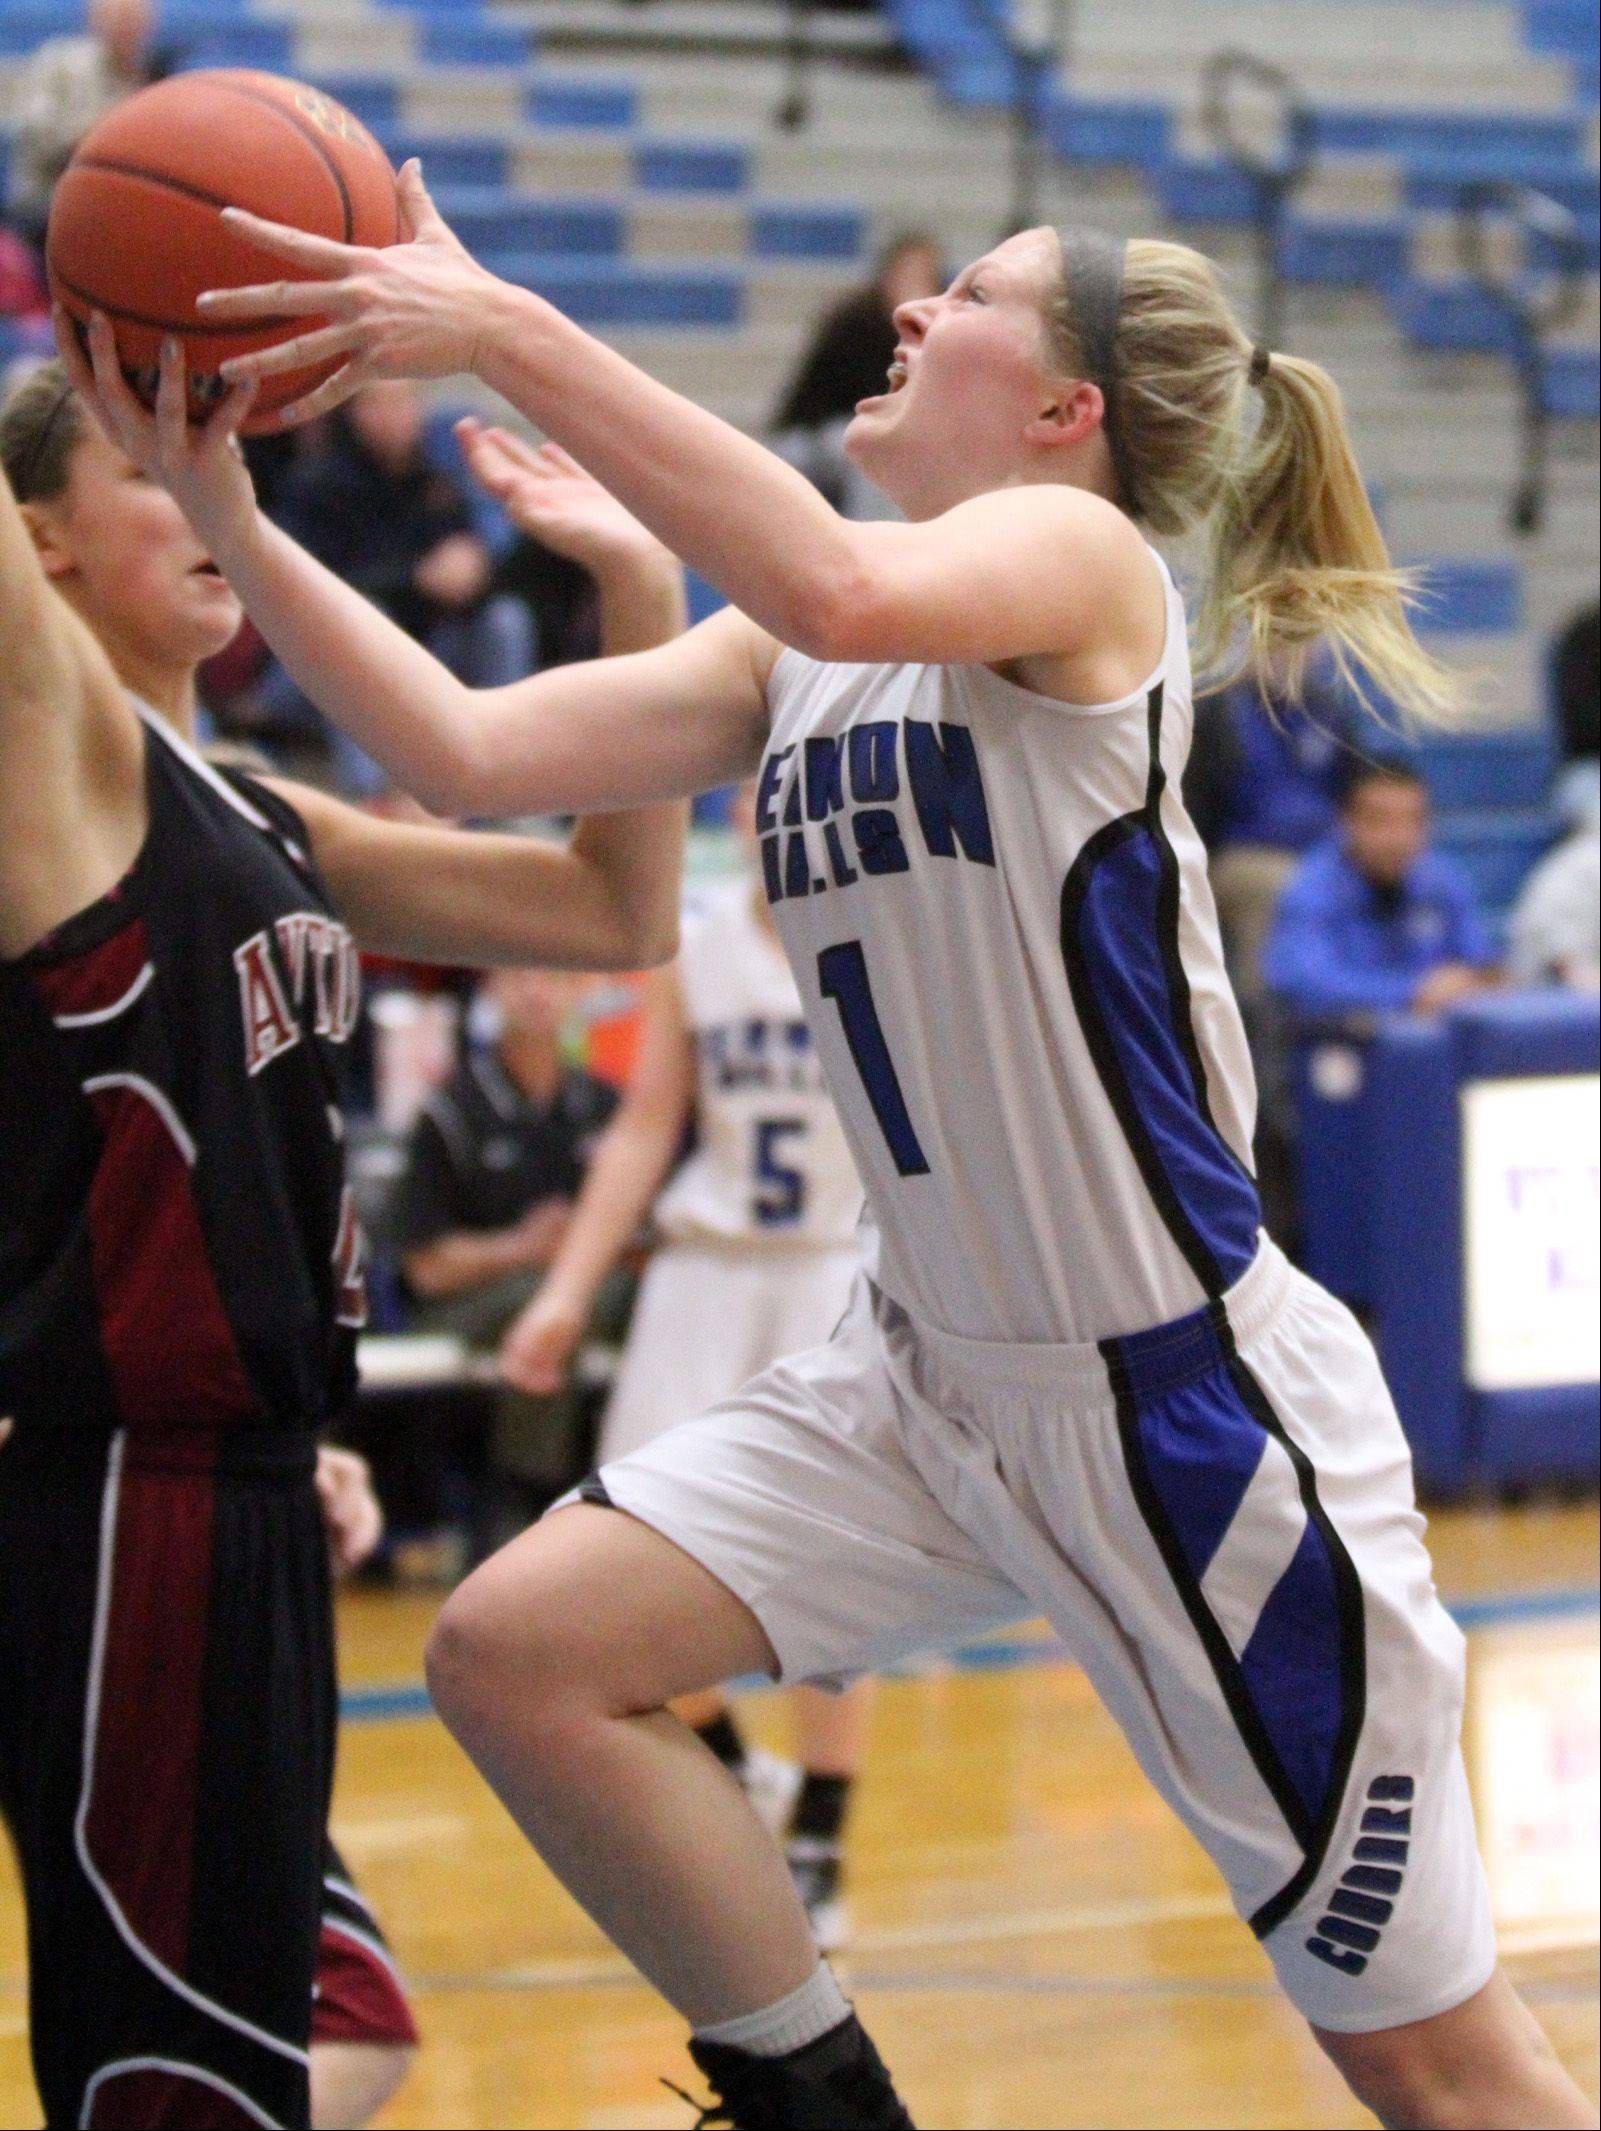 Vernon Hills' Sydney Smith drives in for a layup against Antioch in Vernon Hills on Saturday, December 15.